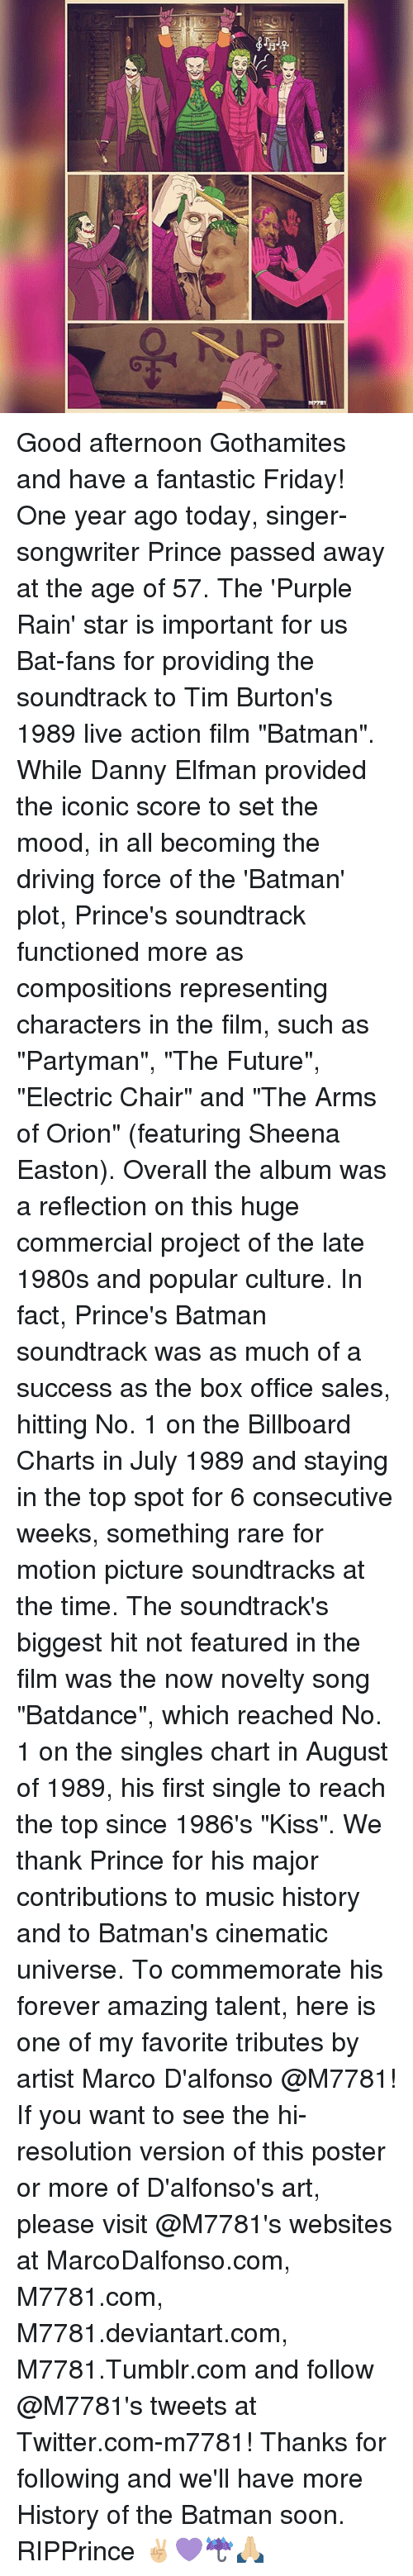 """electric chair: y Good afternoon Gothamites and have a fantastic Friday! One year ago today, singer-songwriter Prince passed away at the age of 57. The 'Purple Rain' star is important for us Bat-fans for providing the soundtrack to Tim Burton's 1989 live action film """"Batman"""". While Danny Elfman provided the iconic score to set the mood, in all becoming the driving force of the 'Batman' plot, Prince's soundtrack functioned more as compositions representing characters in the film, such as """"Partyman"""", """"The Future"""", """"Electric Chair"""" and """"The Arms of Orion"""" (featuring Sheena Easton). Overall the album was a reflection on this huge commercial project of the late 1980s and popular culture. In fact, Prince's Batman soundtrack was as much of a success as the box office sales, hitting No. 1 on the Billboard Charts in July 1989 and staying in the top spot for 6 consecutive weeks, something rare for motion picture soundtracks at the time. The soundtrack's biggest hit not featured in the film was the now novelty song """"Batdance"""", which reached No. 1 on the singles chart in August of 1989, his first single to reach the top since 1986's """"Kiss"""". We thank Prince for his major contributions to music history and to Batman's cinematic universe. To commemorate his forever amazing talent, here is one of my favorite tributes by artist Marco D'alfonso @M7781! If you want to see the hi-resolution version of this poster or more of D'alfonso's art, please visit @M7781's websites at MarcoDalfonso.com, M7781.com, M7781.deviantart.com, M7781.Tumblr.com and follow @M7781's tweets at Twitter.com-m7781! Thanks for following and we'll have more History of the Batman soon. RIPPrince ✌🏼💜☔️🙏🏼"""